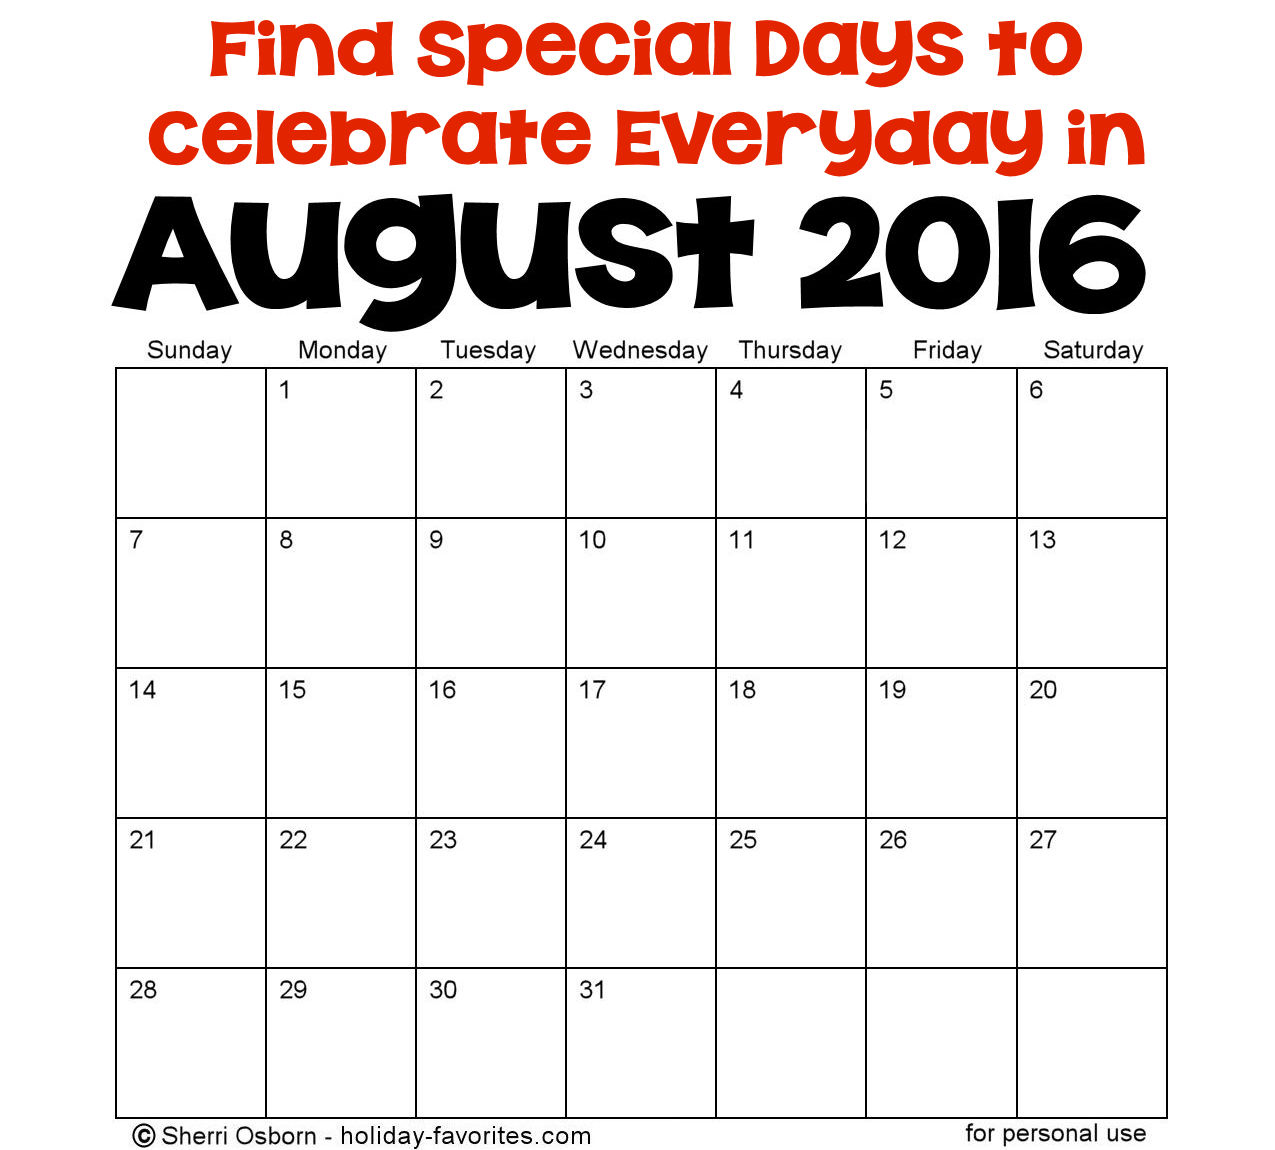 August Holidays and Special Days